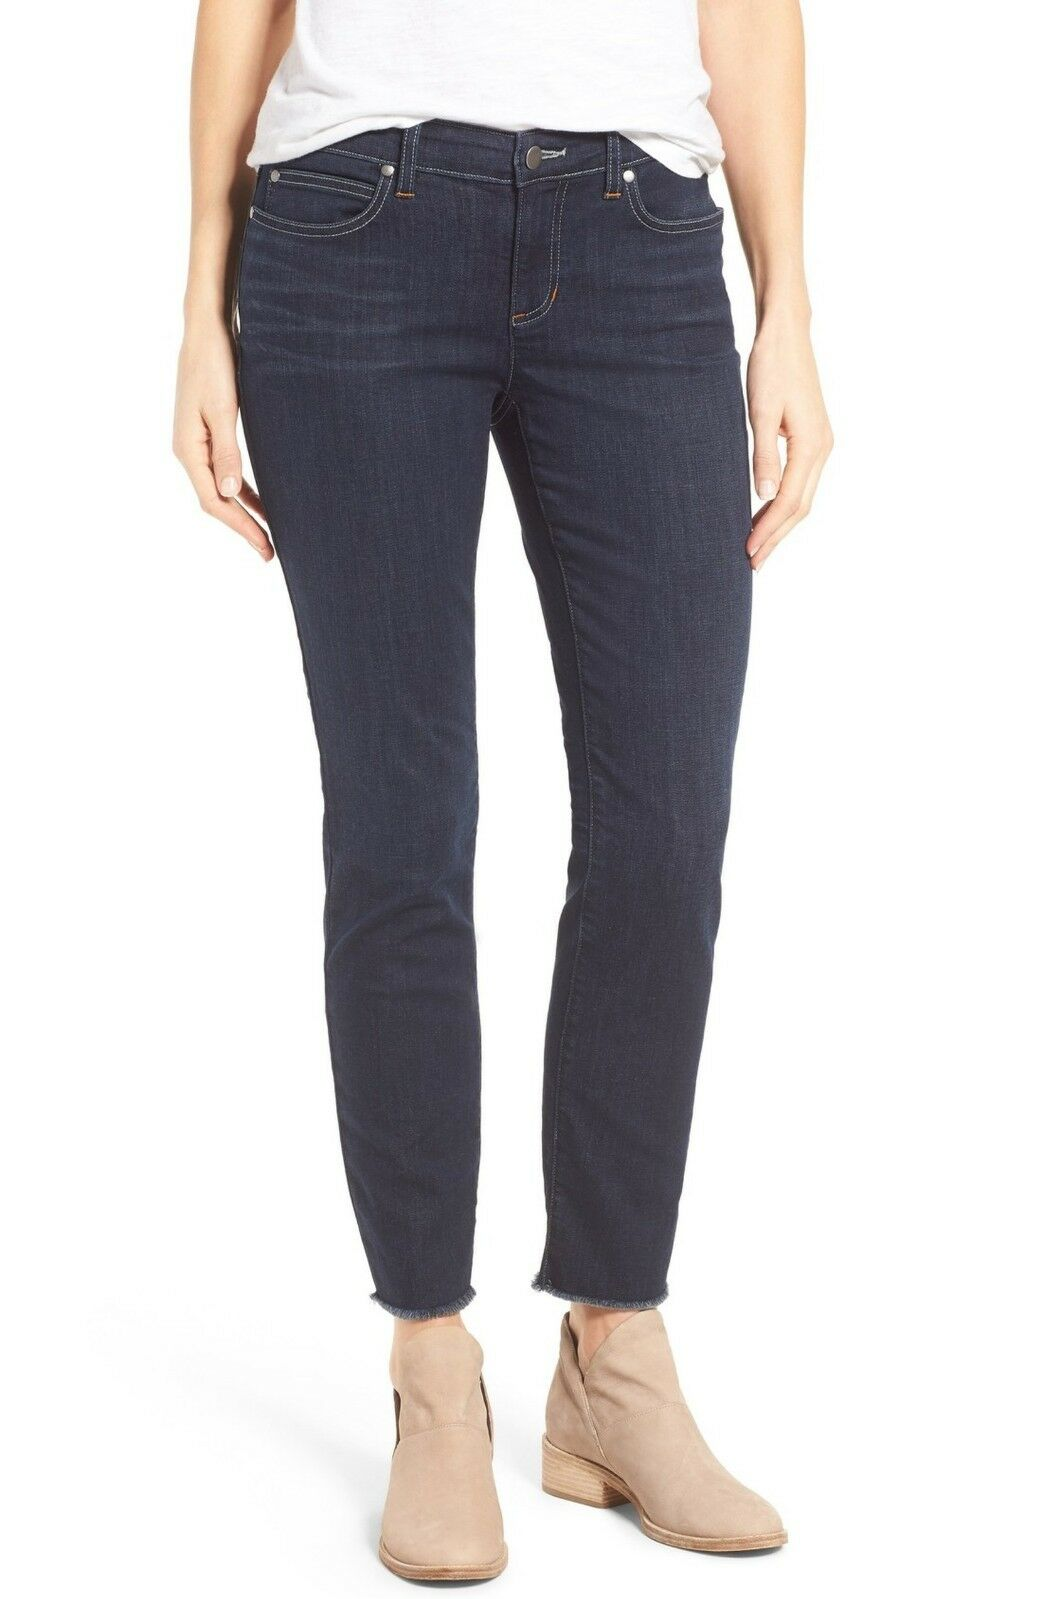 NEW EILEEN FISHER Indigo bluee Wash Organic Cotton Cropped Ankle Slim Jeans 18